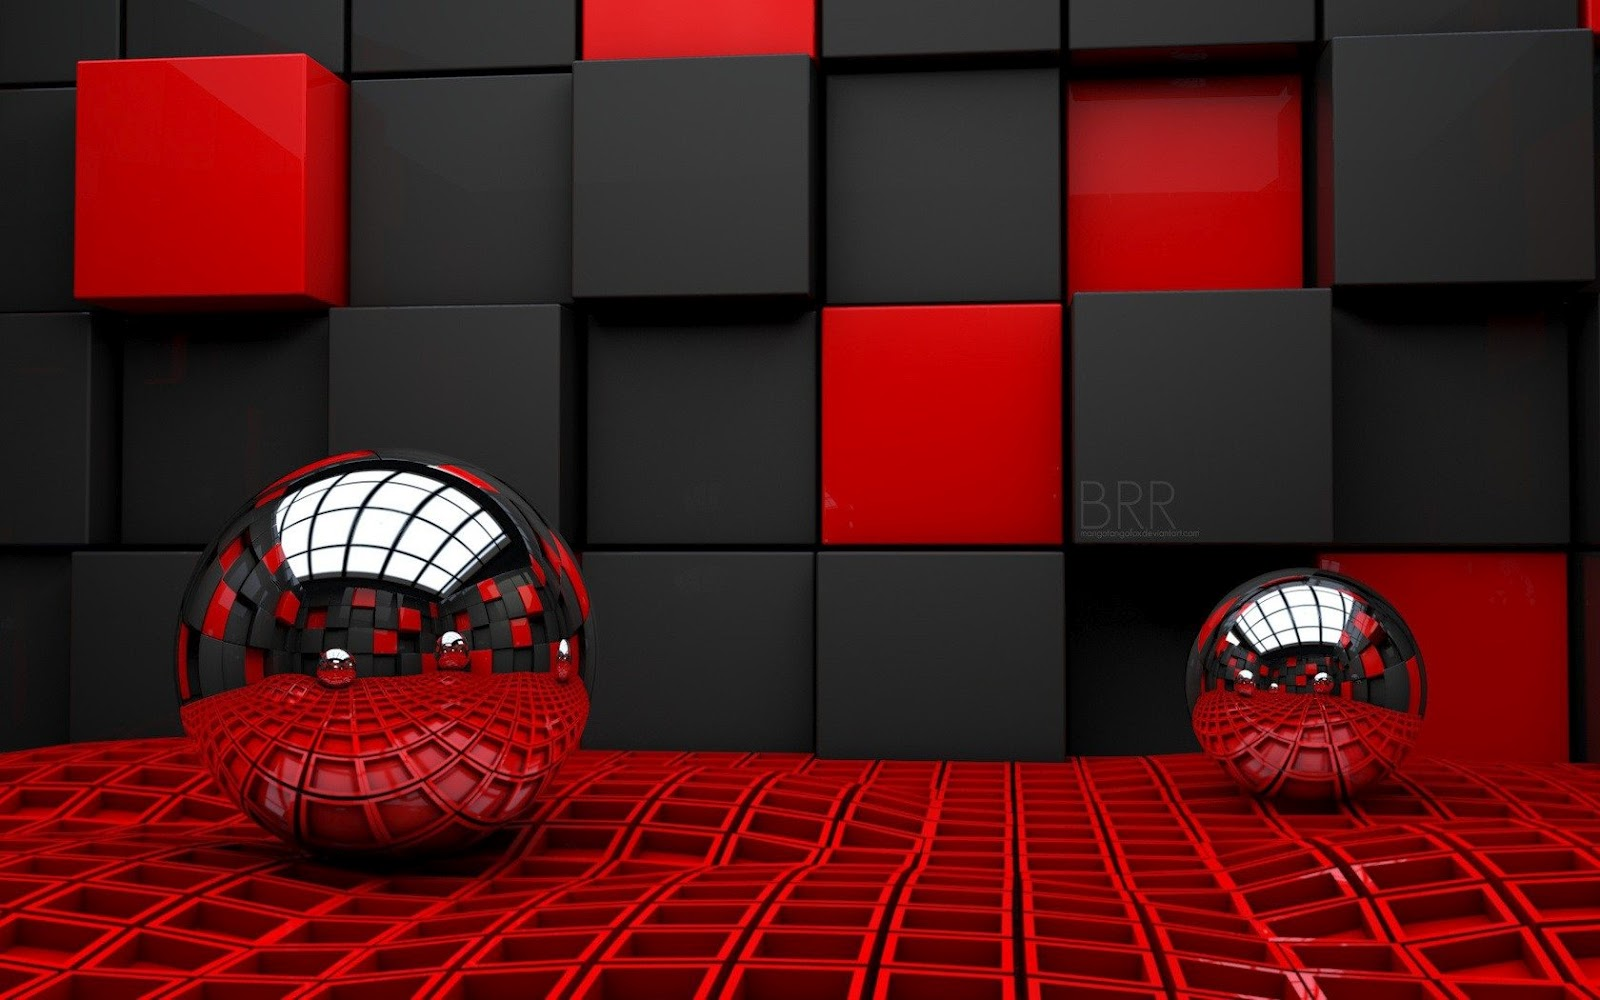 3D Desktop Wallpaper